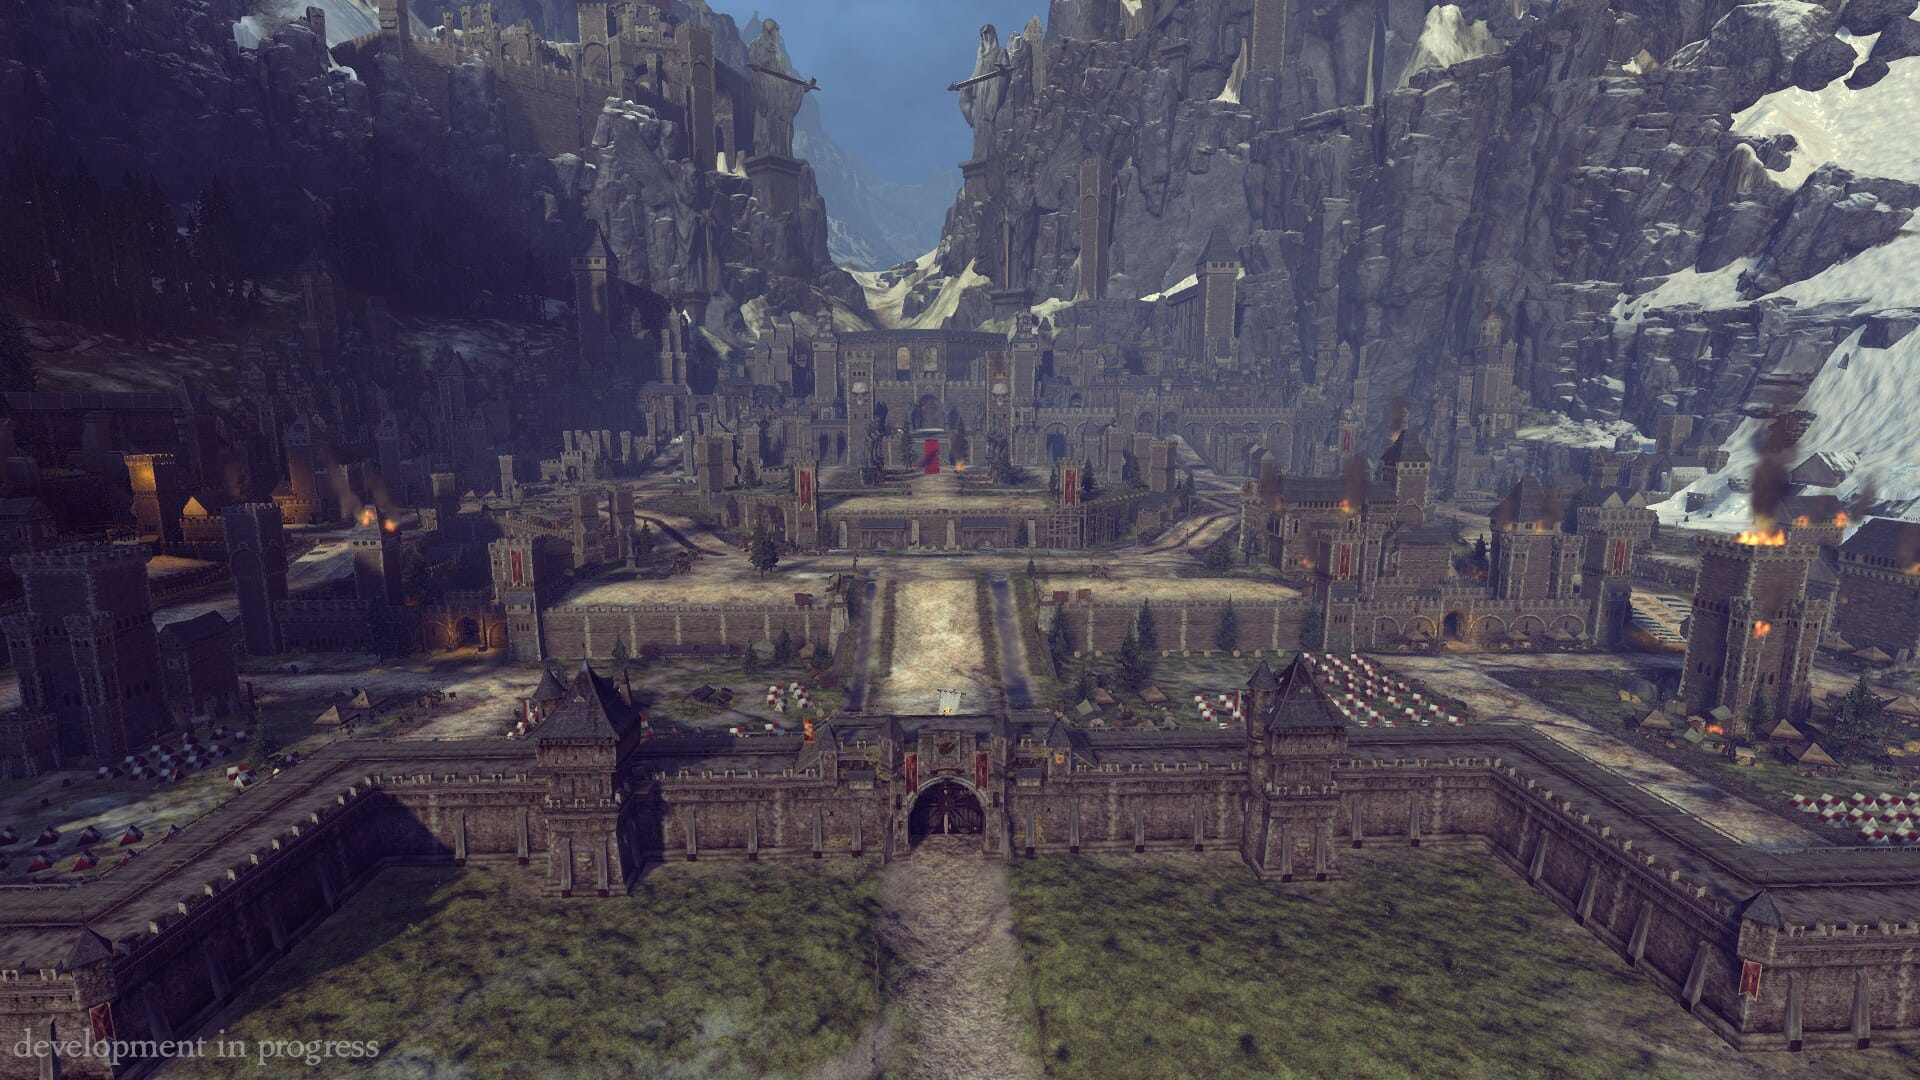 Total War: Warhammer 2's is adding forts to Mortal Empires